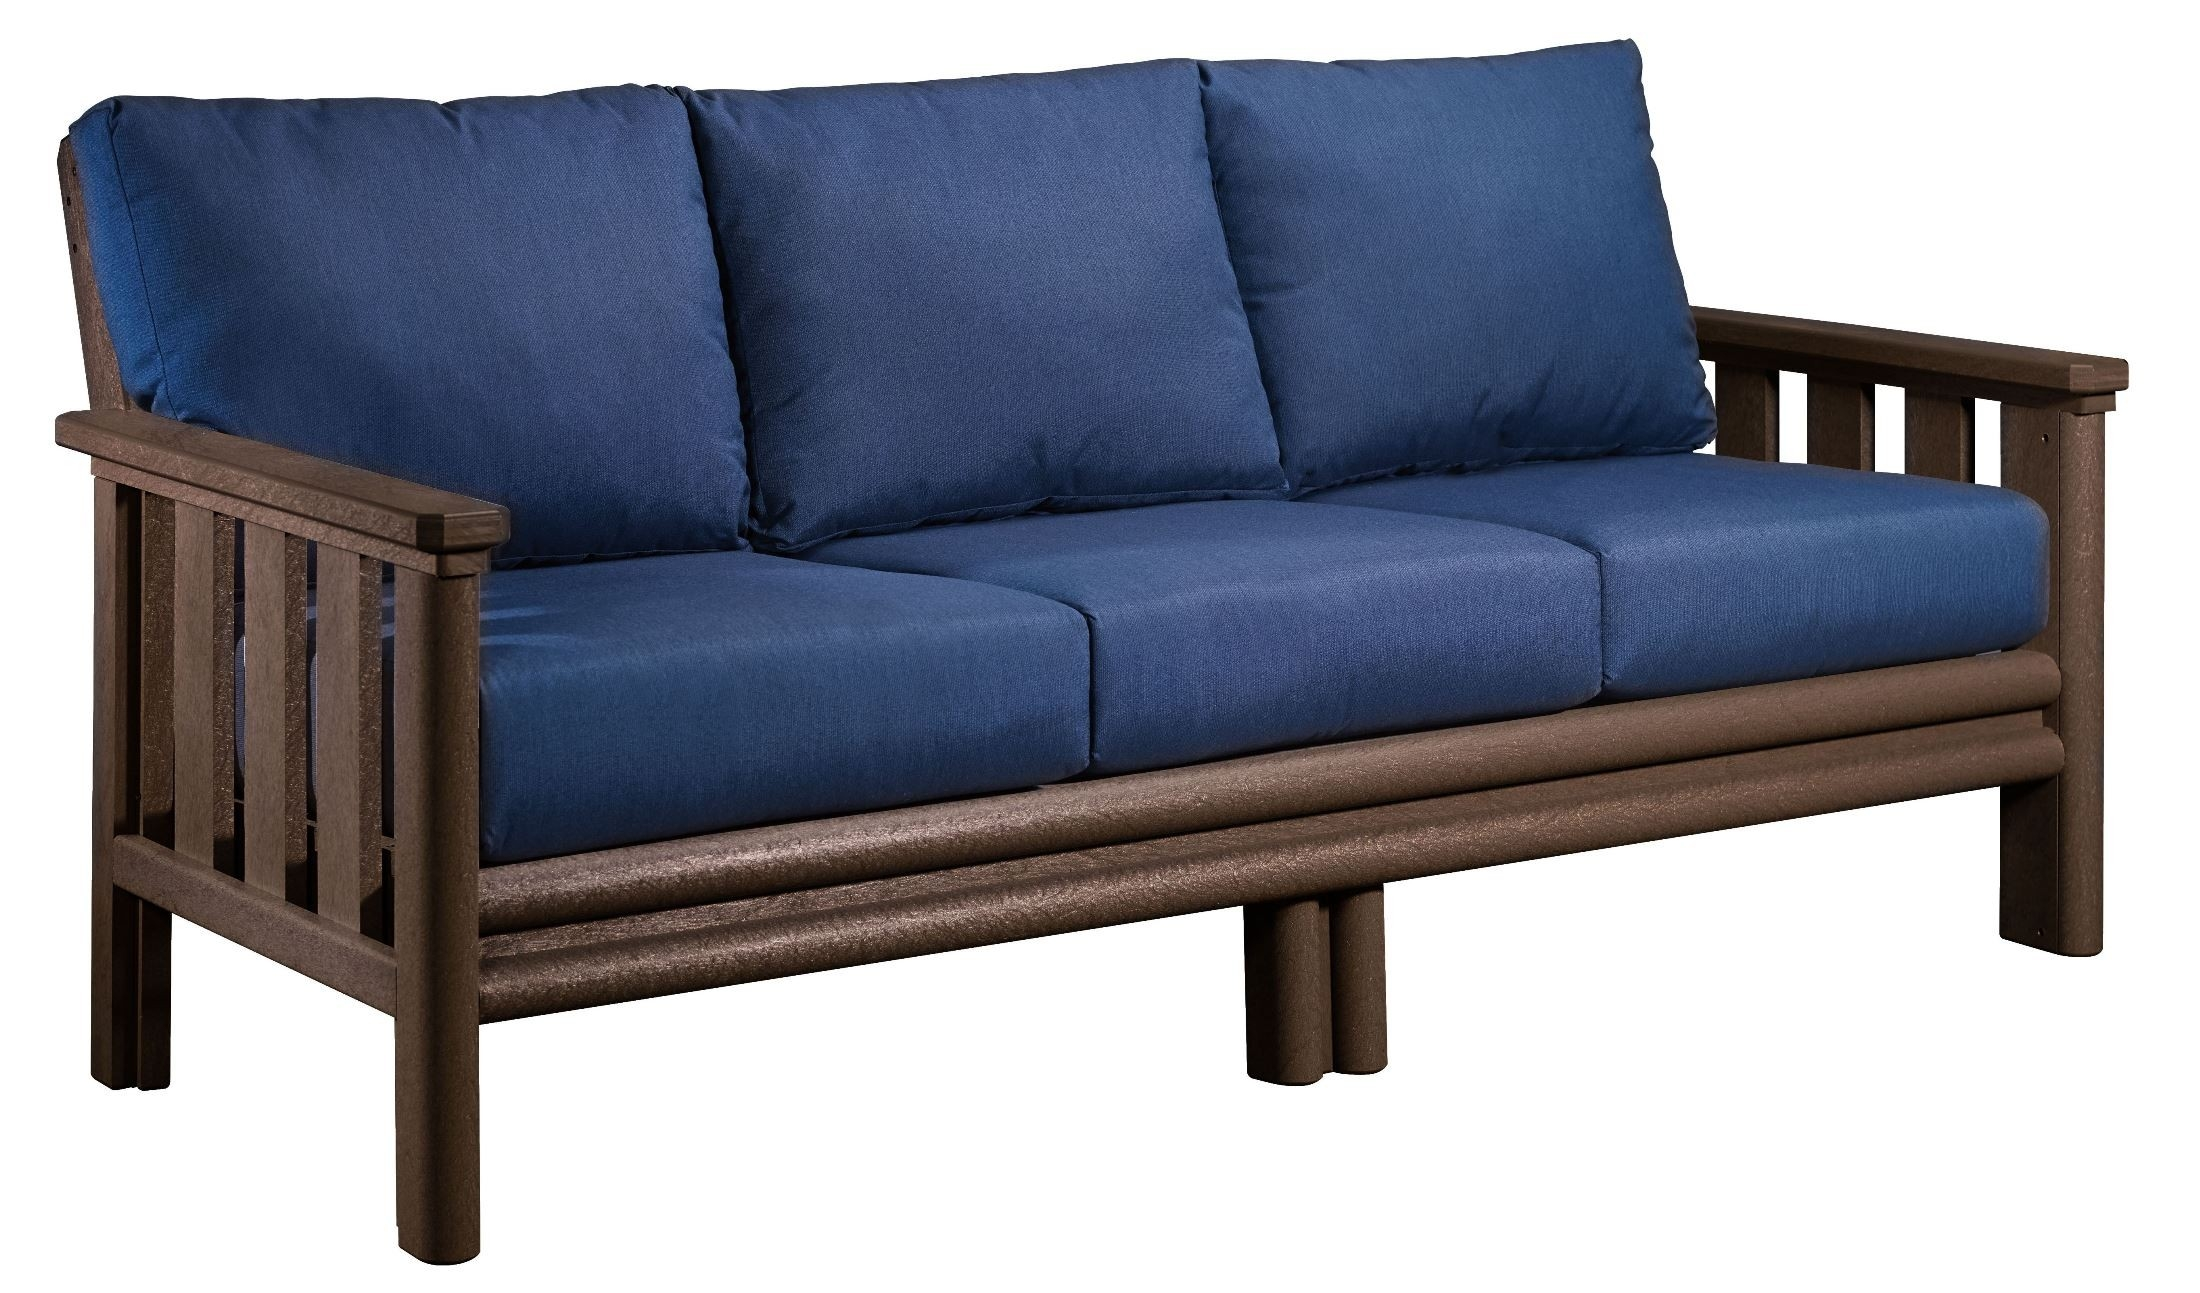 Stratford Chocolate Sofa With Indigo Blue Sunbrella Cushions From With Regard To Stratford Sofas (Image 9 of 15)